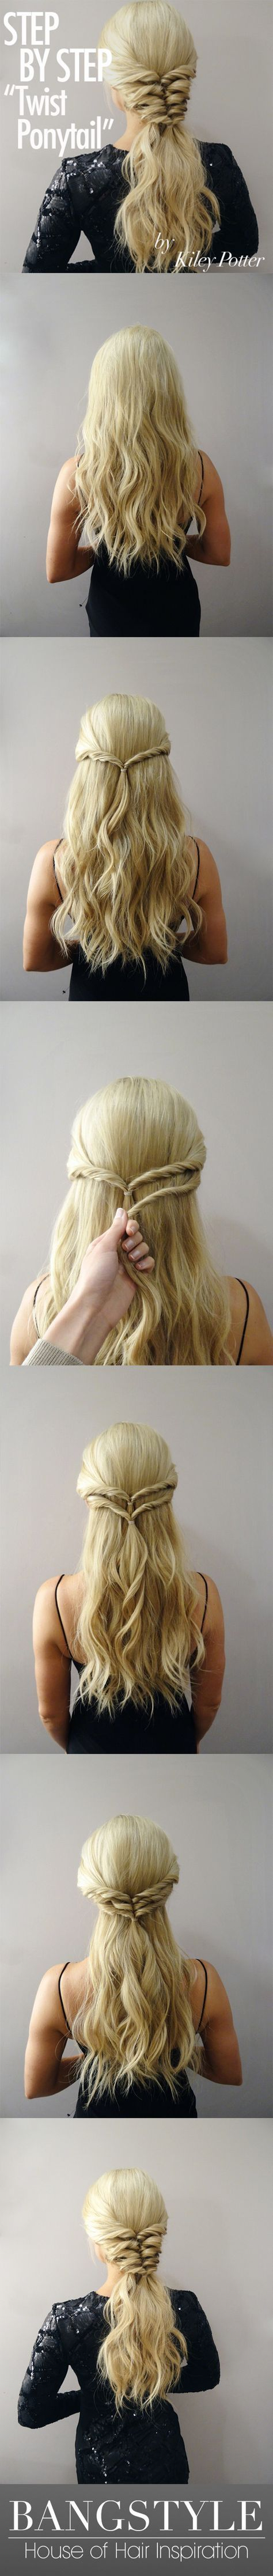 best 25+ simple prom hairstyles ideas on pinterest | easy wedding